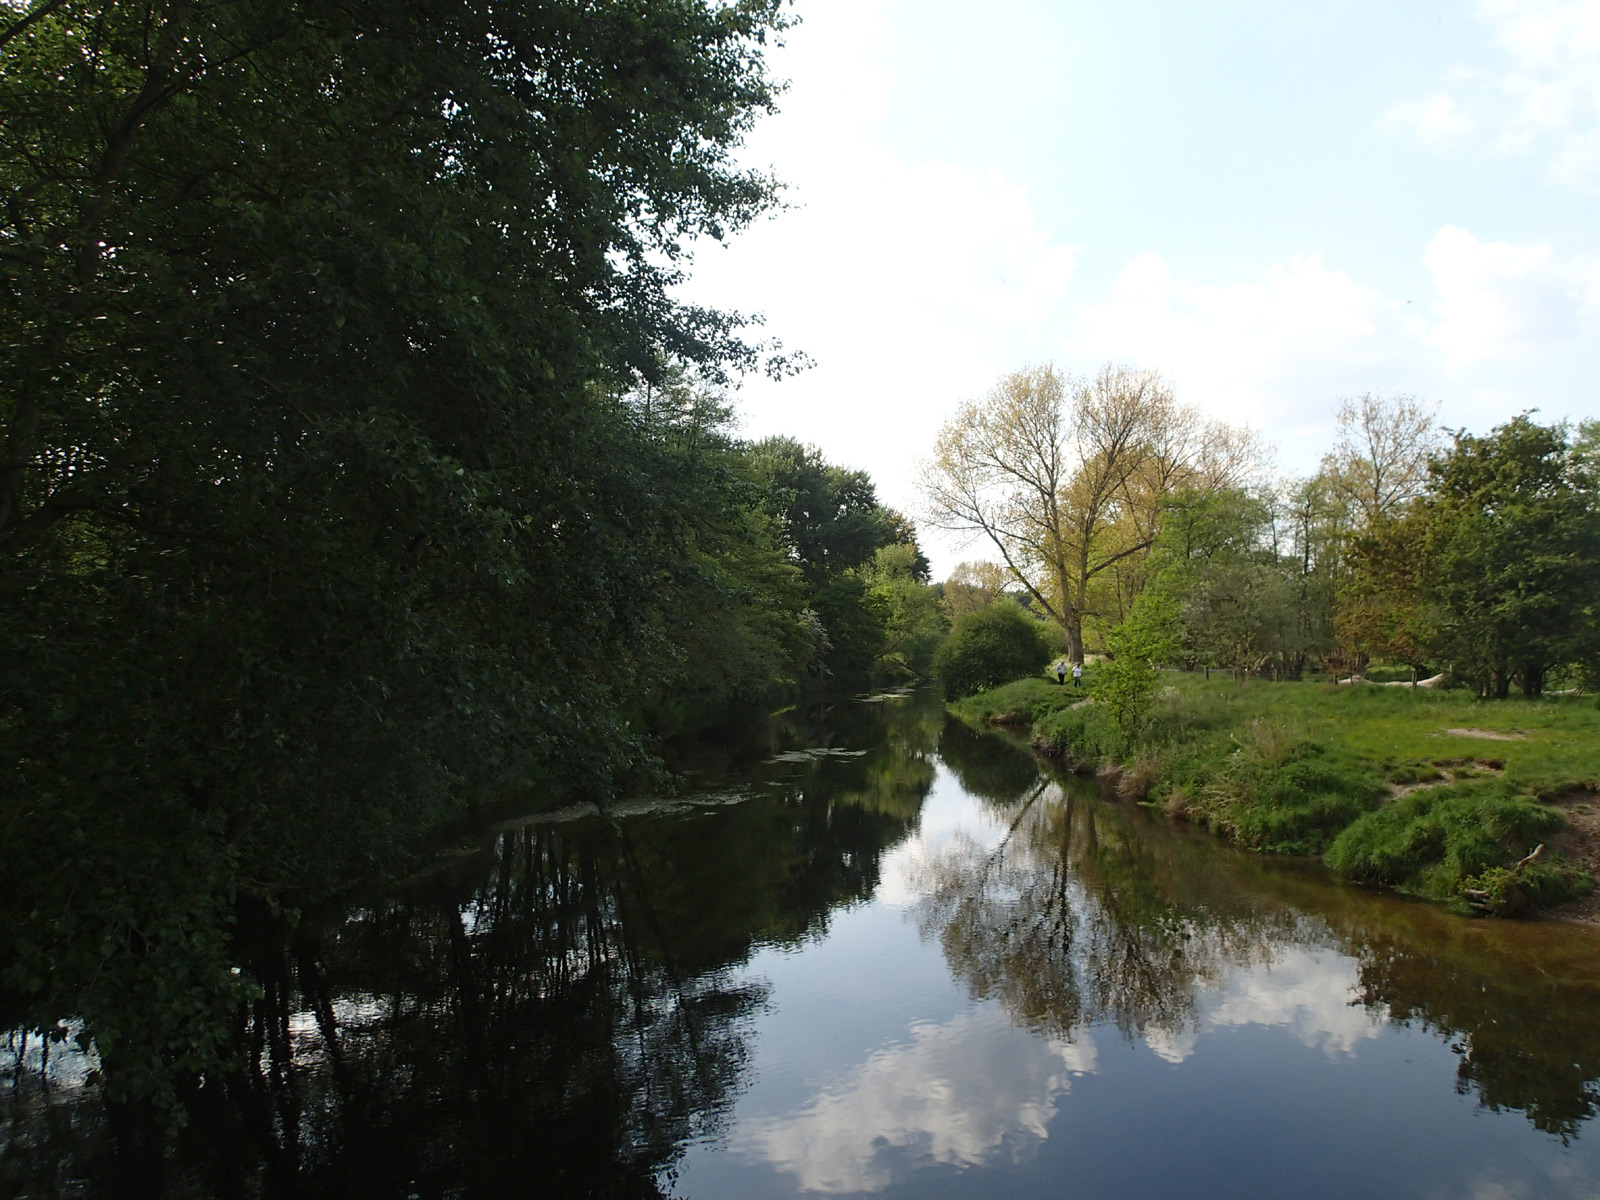 view of the river with reflections and trees